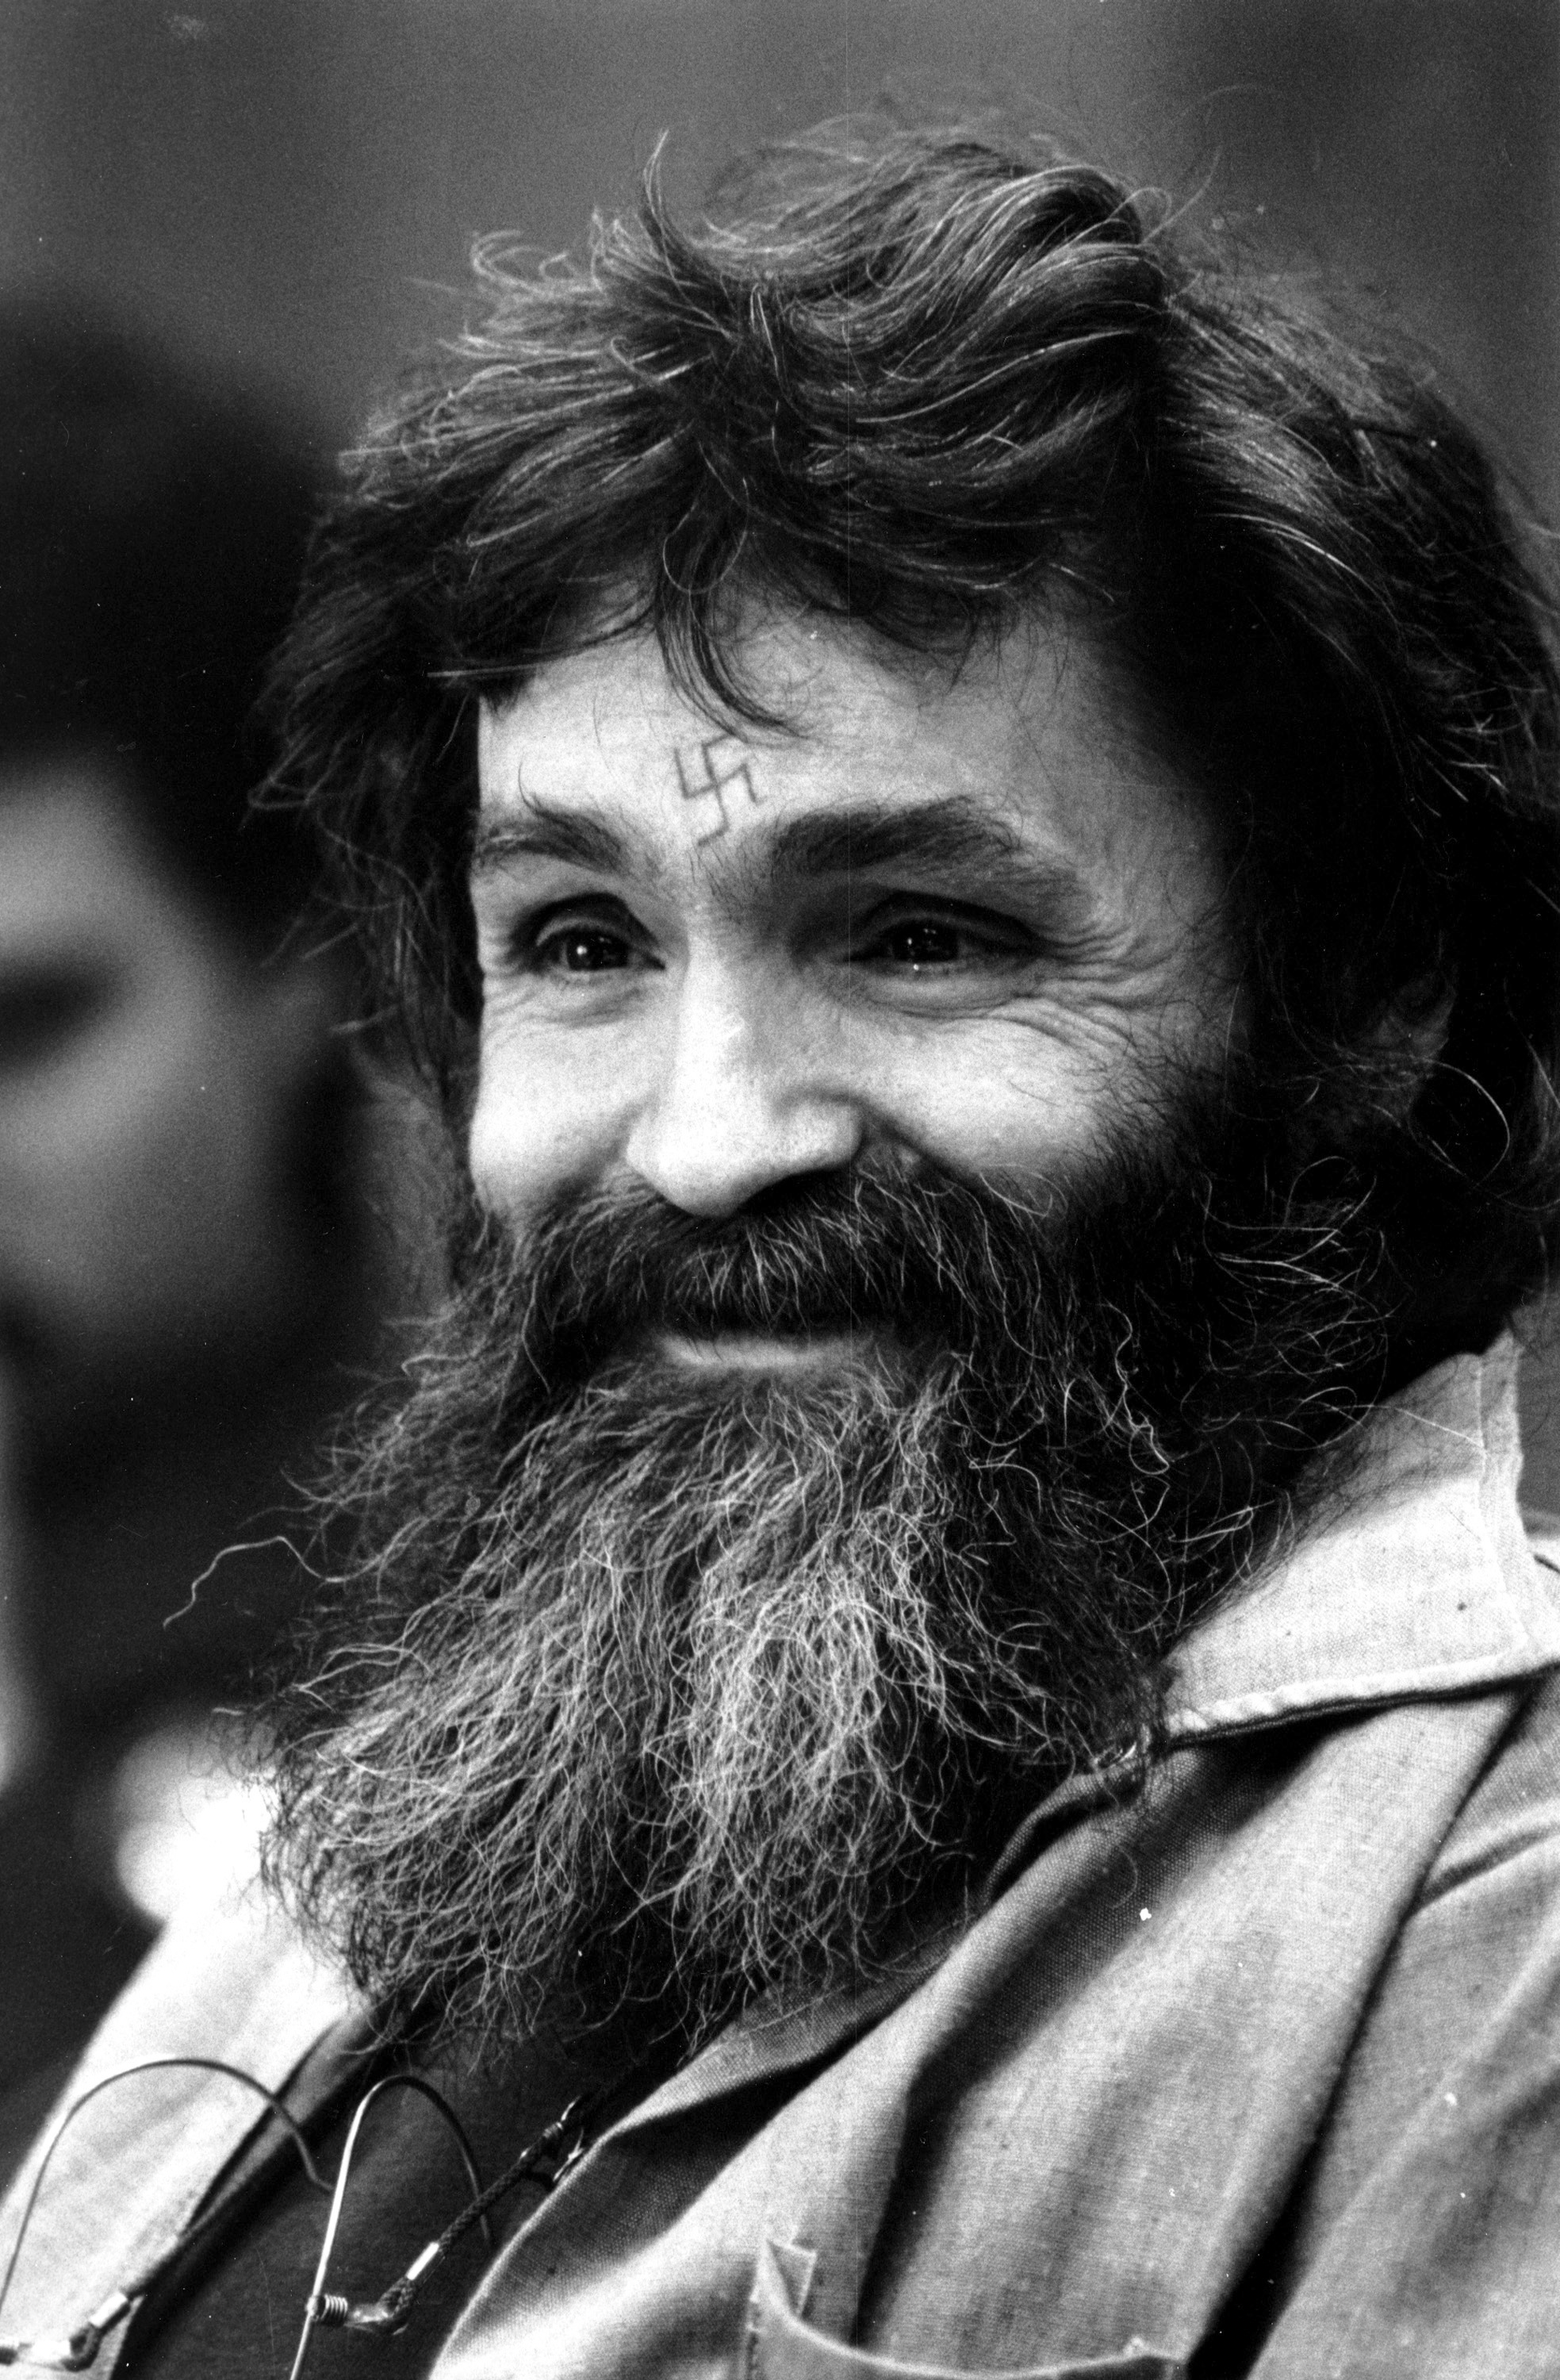 FILE - In this Feb. 4, 1986, file photo, convicted murderer Charles Manson looks towards the parole board in San Quentin, Calif. Authorities say Manson, cult leader and mastermind behind 1969 deaths of actress Sharon Tate and several others, died on Sunday, Nov. 19, 2017. He was 83.(AP Photo/Eric Risberg, File)